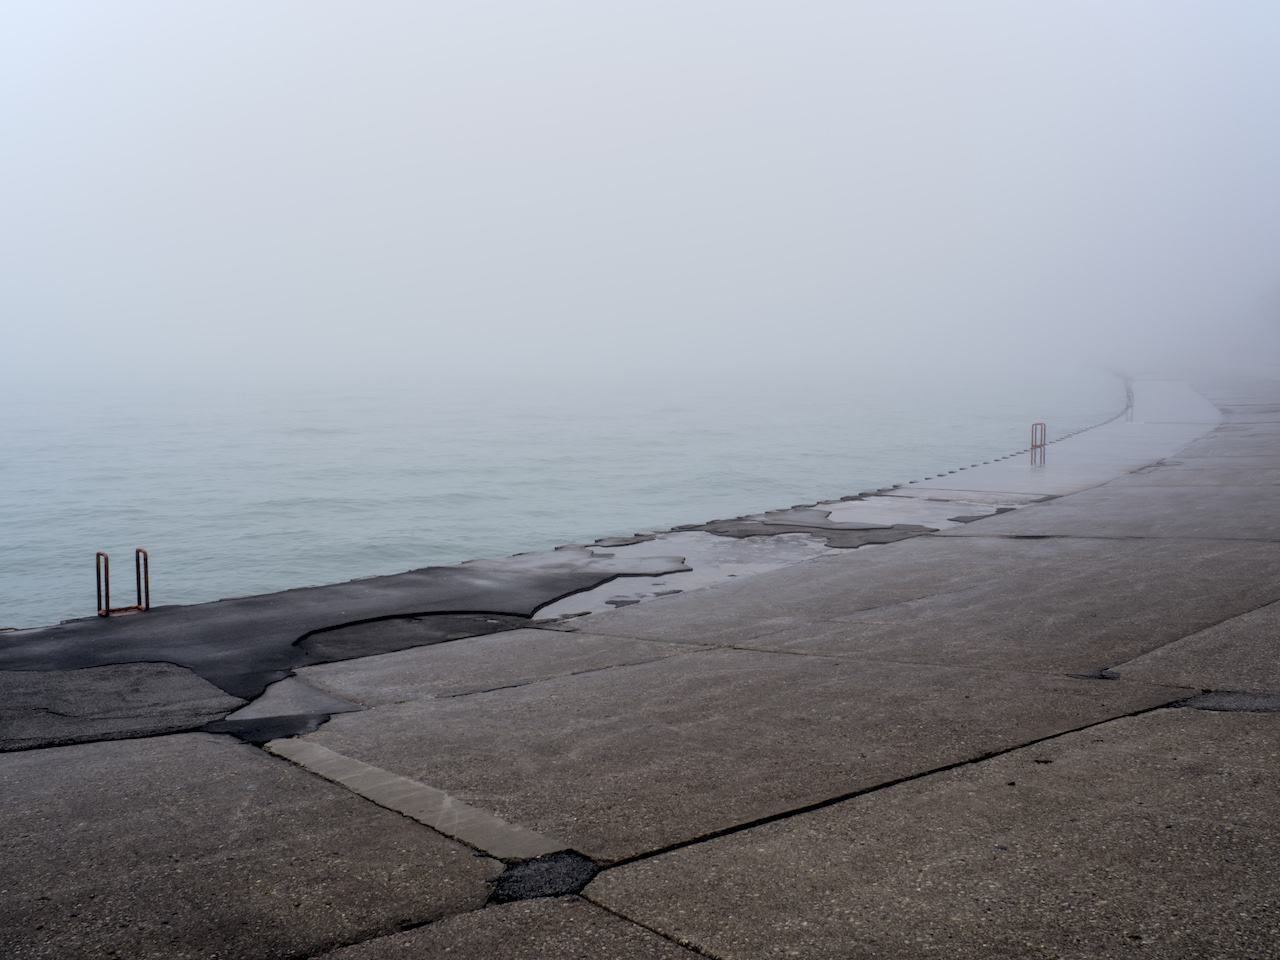 a photo from The Shore, a scorpion tail of concrete curves to the left into Lake Michigan with a muted sky